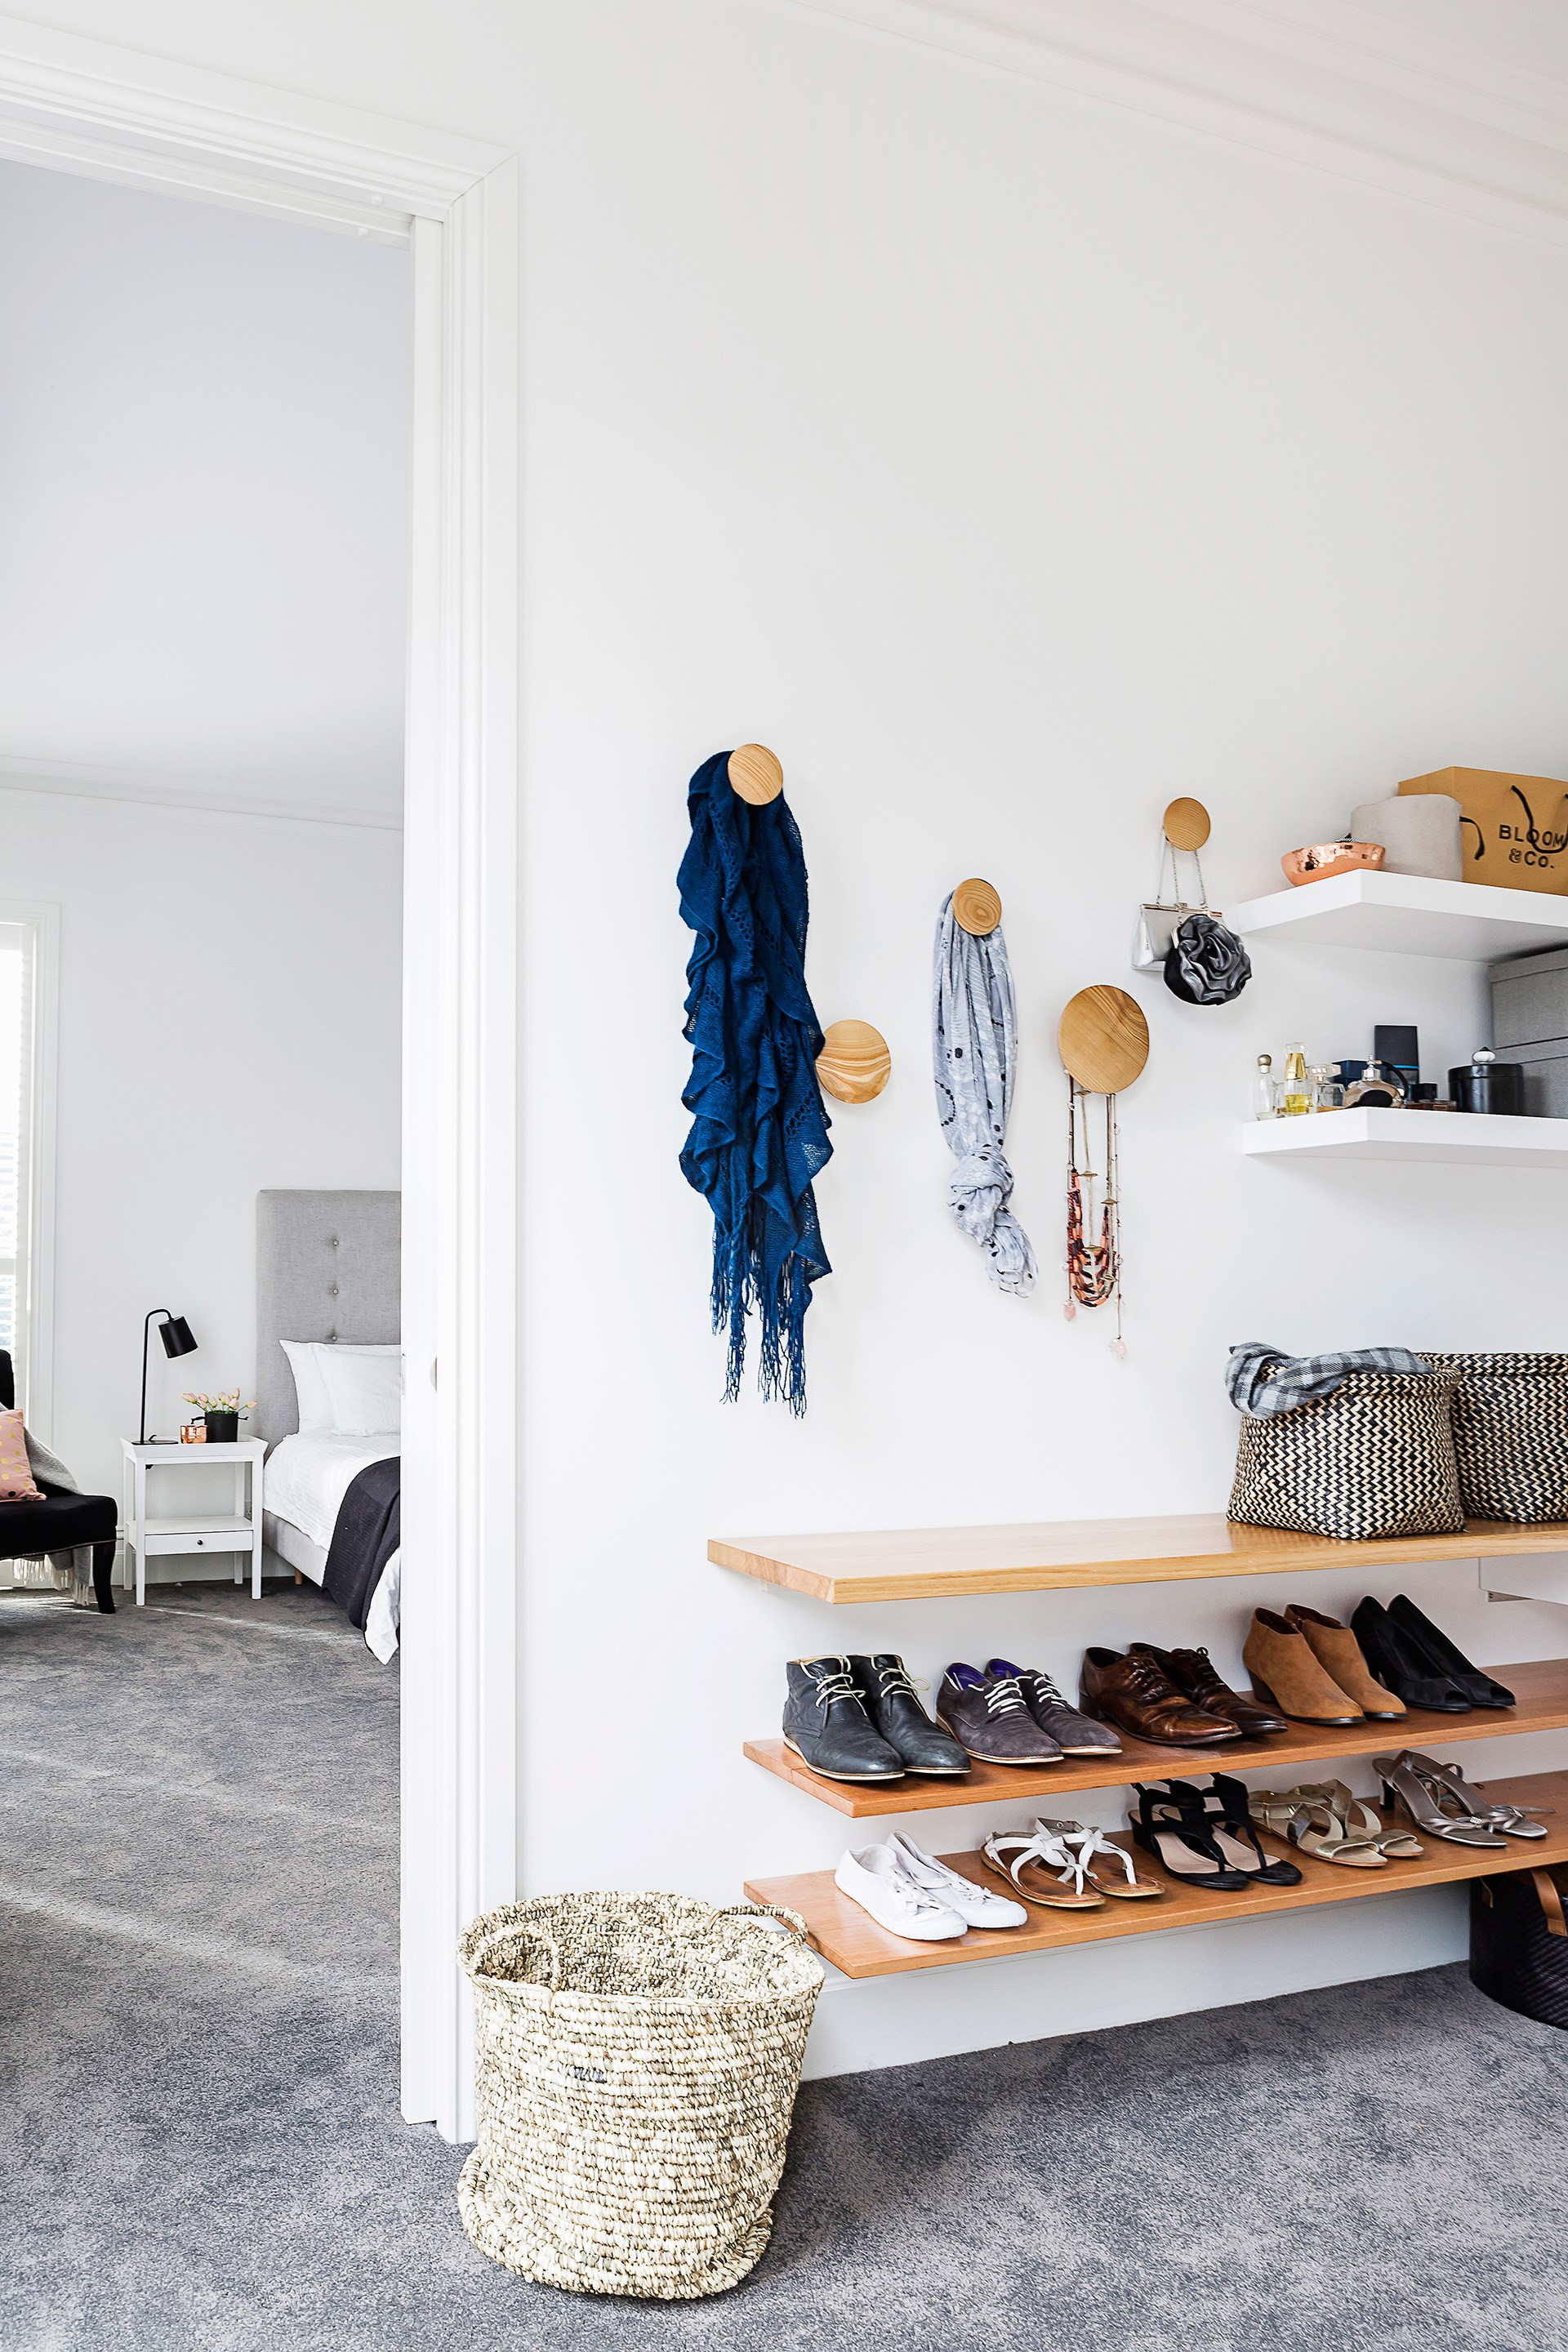 """**Tidy your room.** Your bedroom should be a haven, [keeping it clean](http://www.homestolove.com.au/how-to-clean-your-room-and-keep-it-that-way-3260 